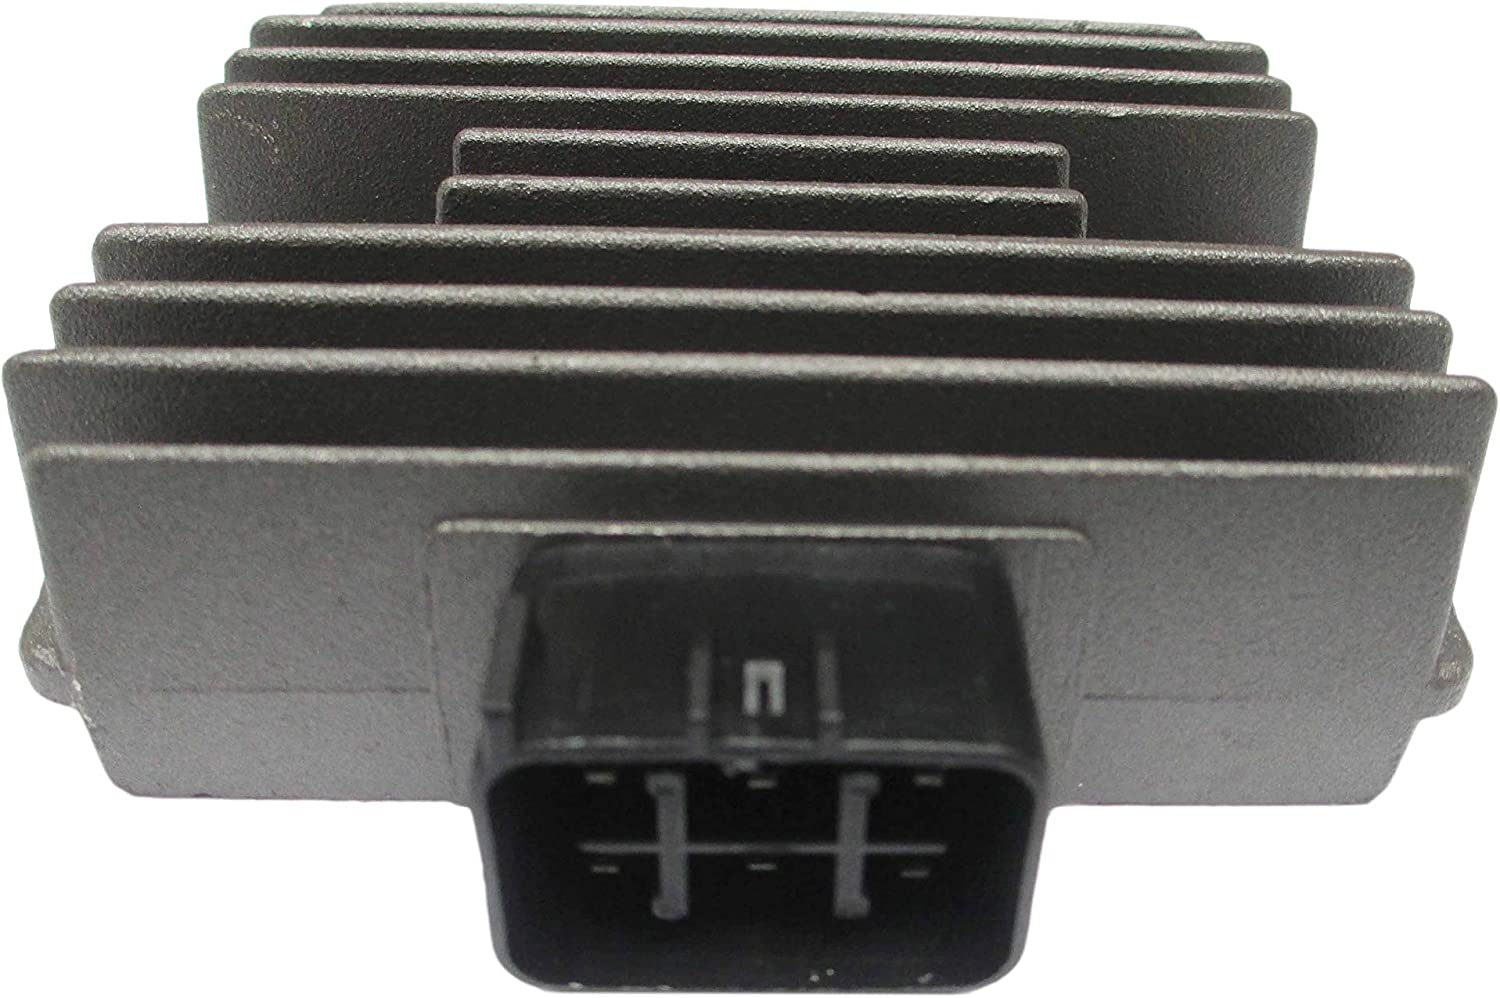 NEW 115HP 4T 68V-81960 VOLTAGE REGULATOR RECTIFIER Assy Fit Yamaha Outboard F 40HP